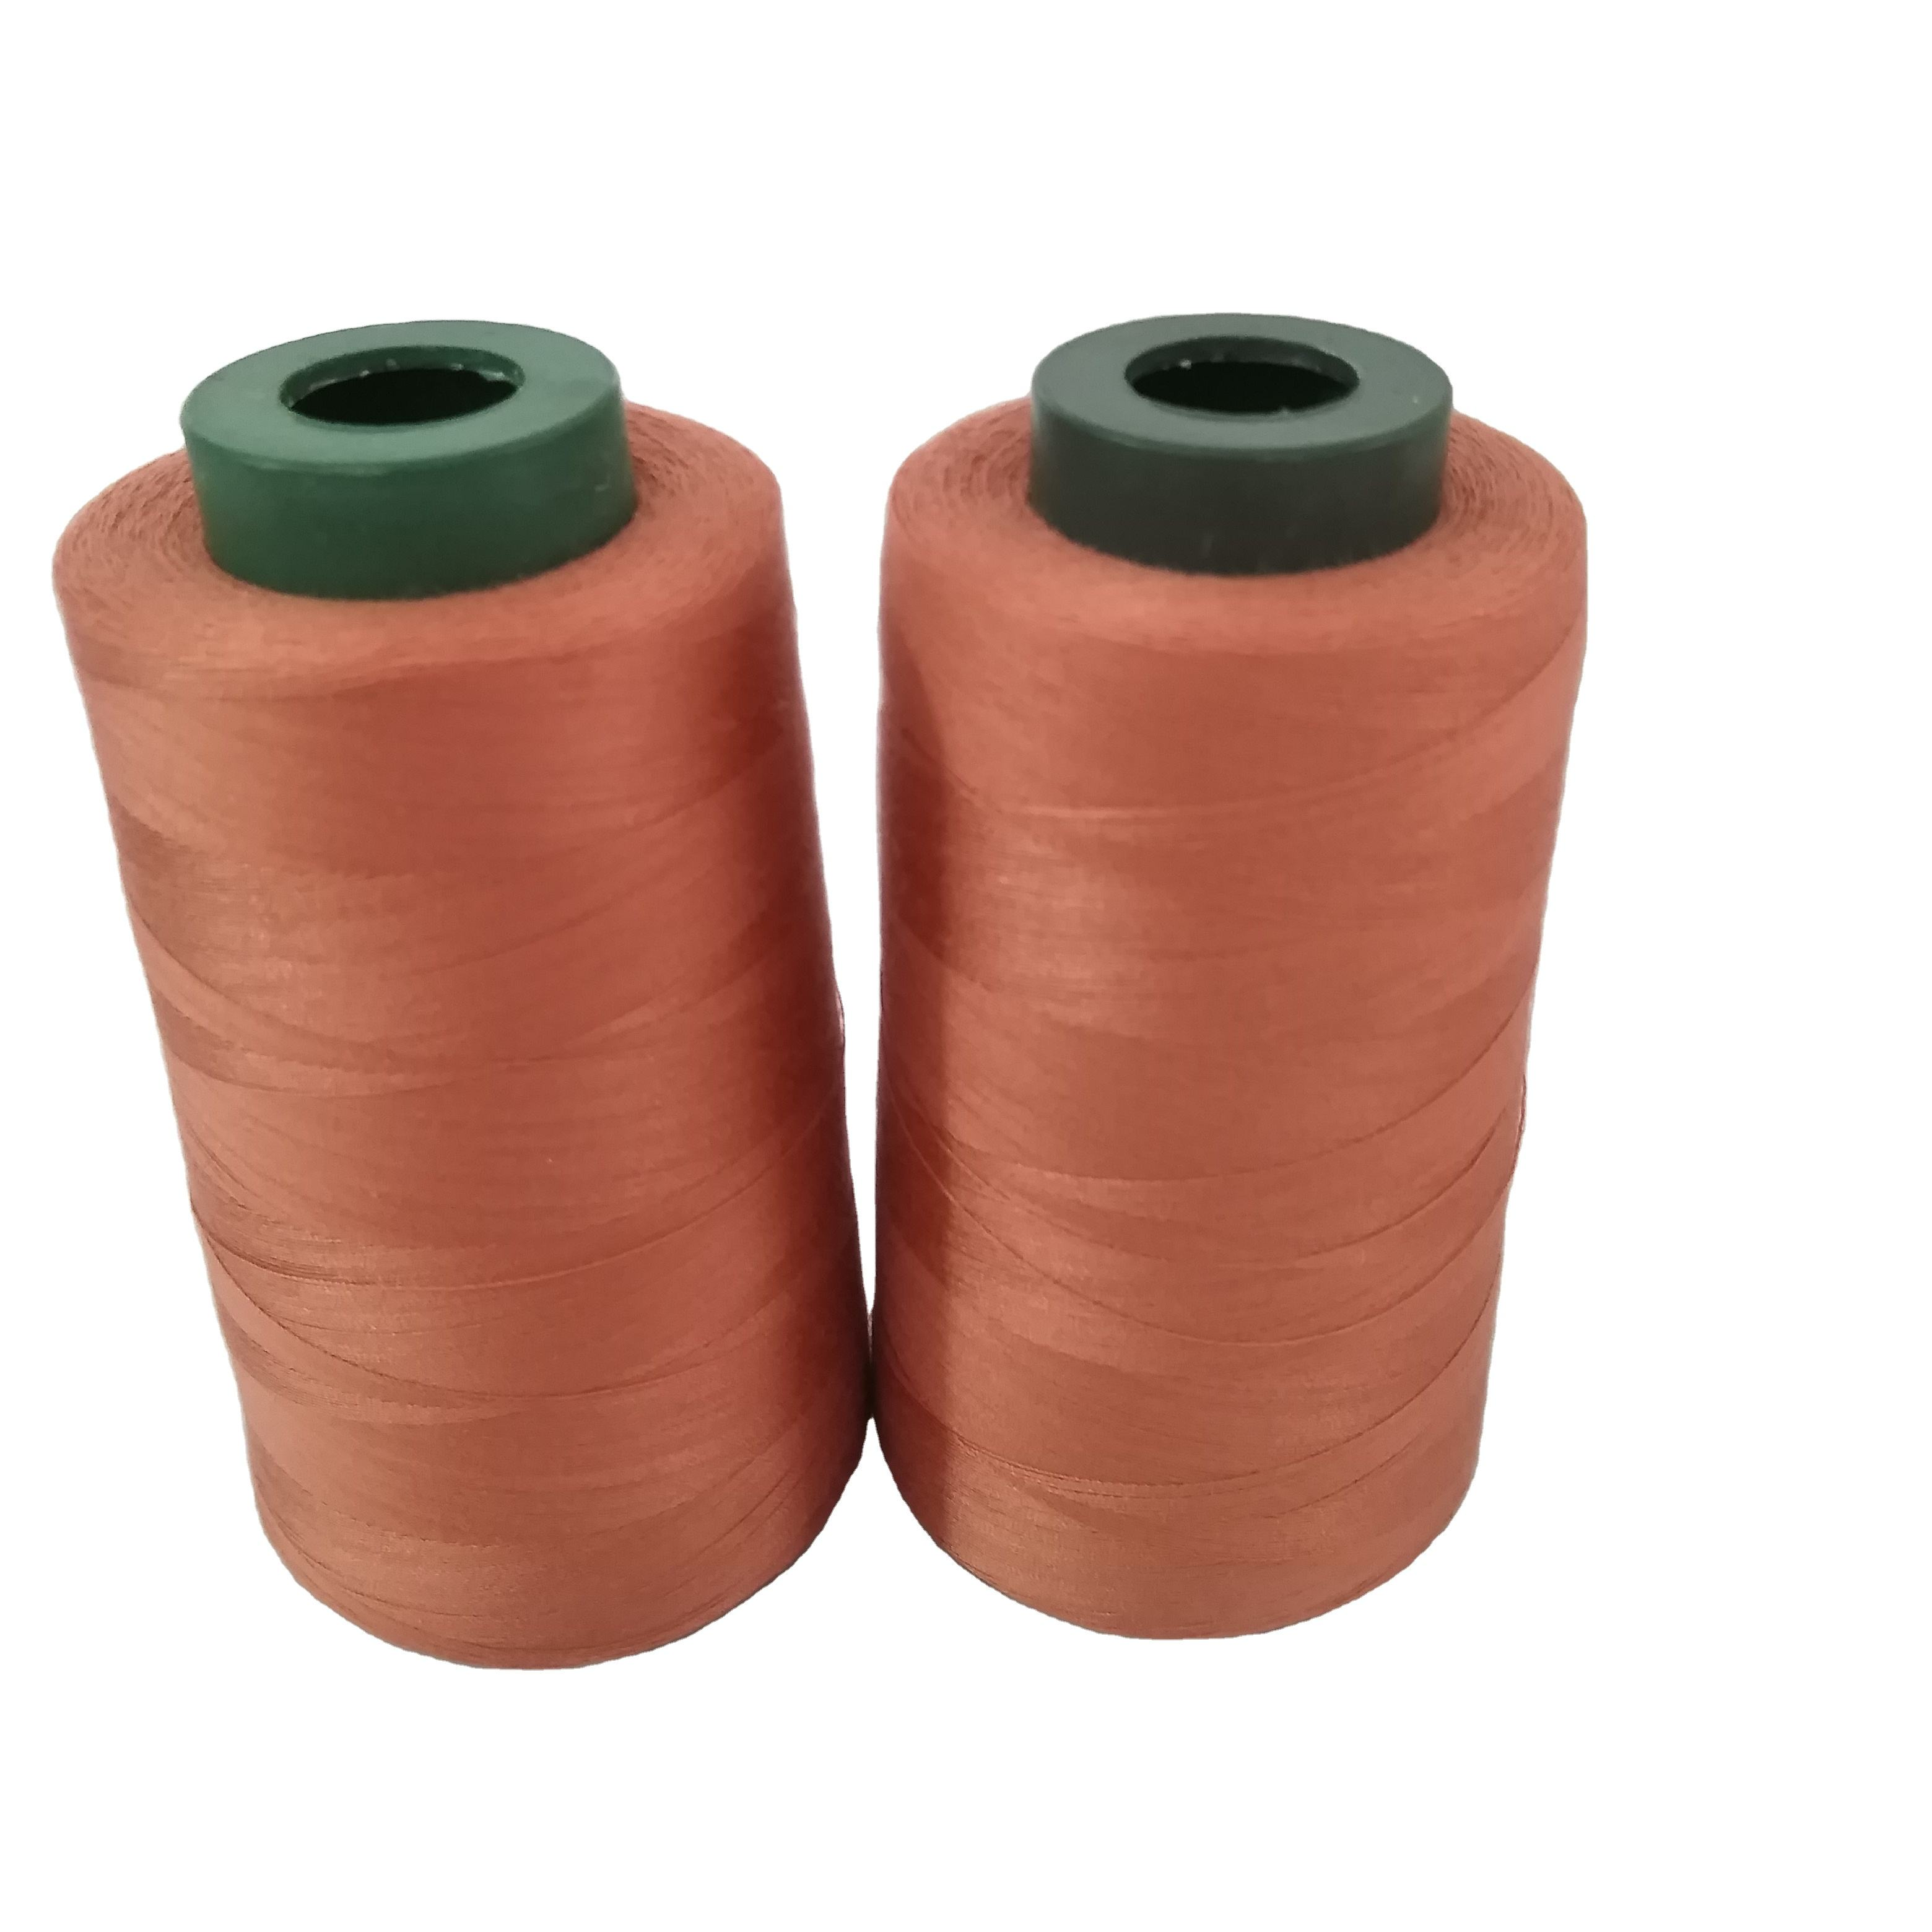 Best price line 100% polyester dyeing sewing thread 40s / 2 5000 y sewing thread thread shaft